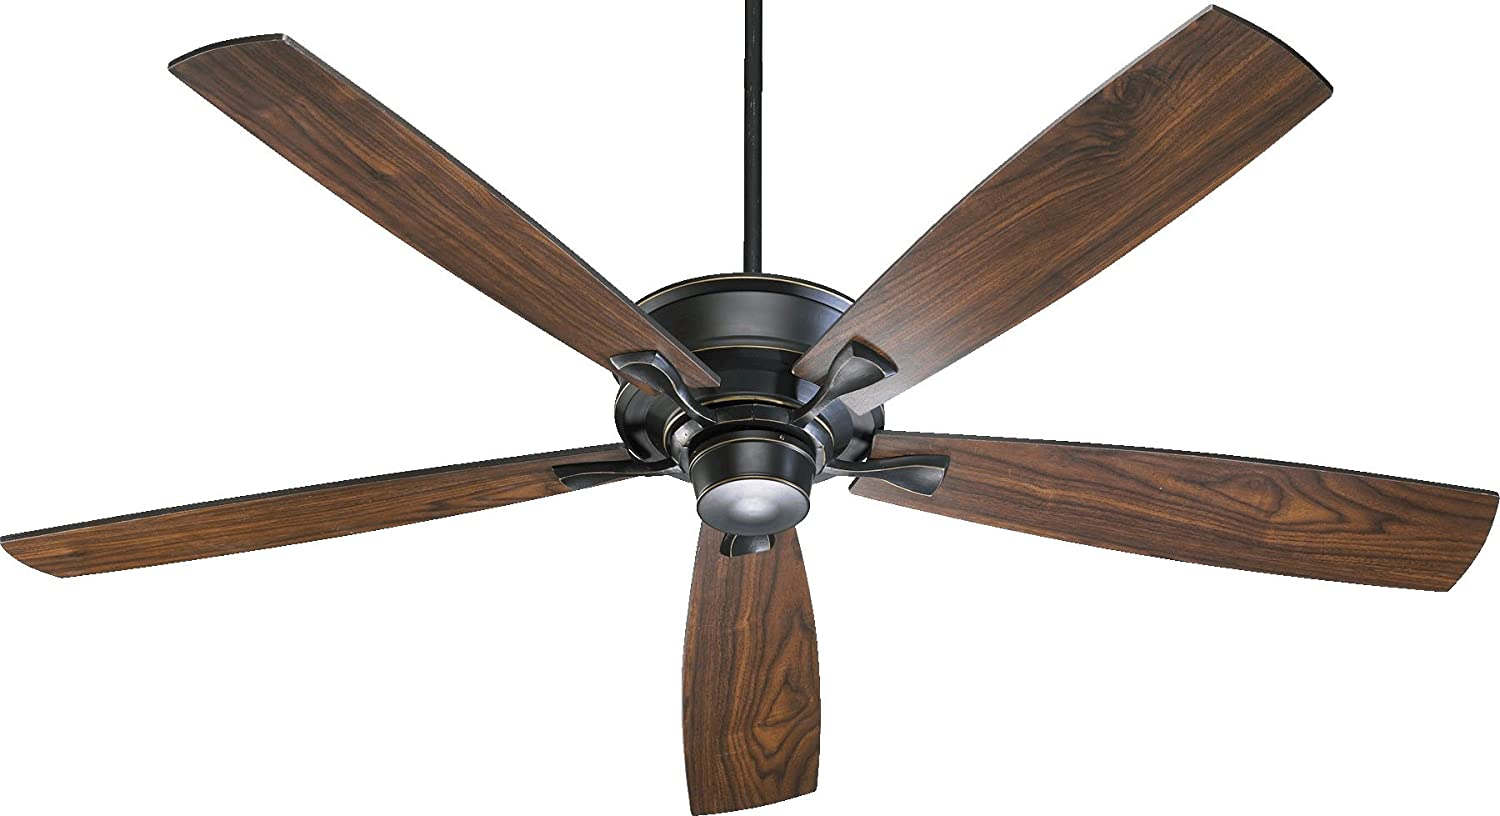 fans fan large a ceiling youtube simple in hall things watch